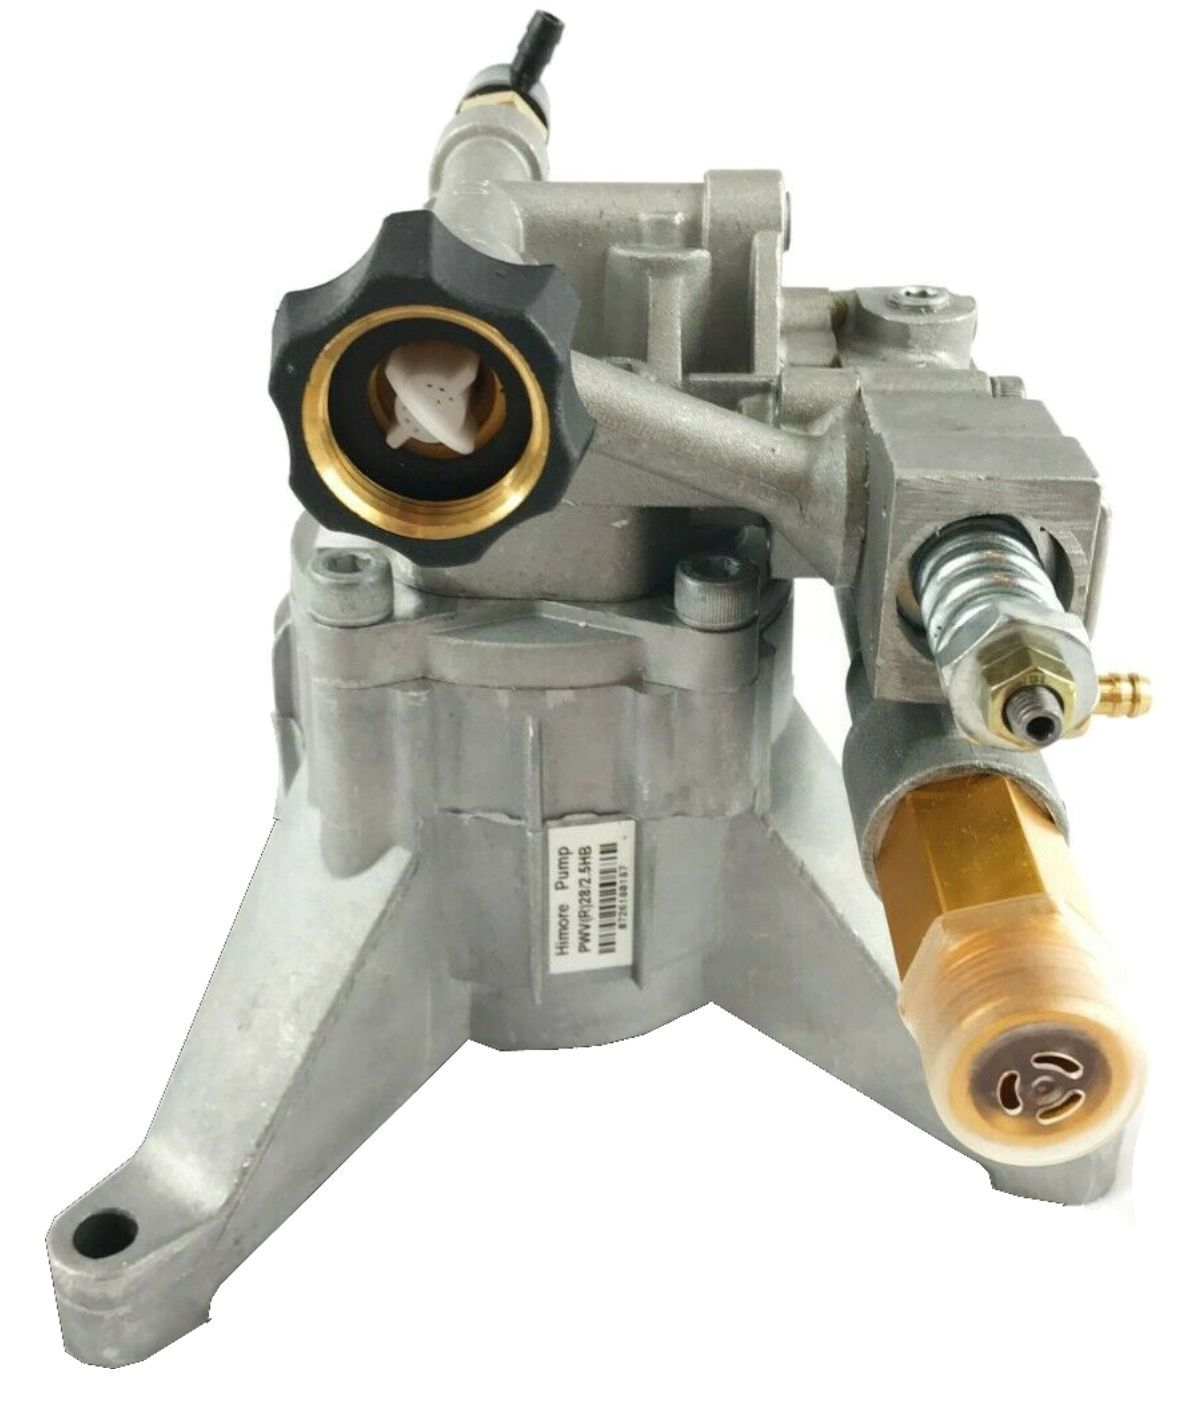 2800 PSI Pressure Washer Pump |  Devilbiss EXWGV2121-2 EXWGV2121-4 | Auto Express